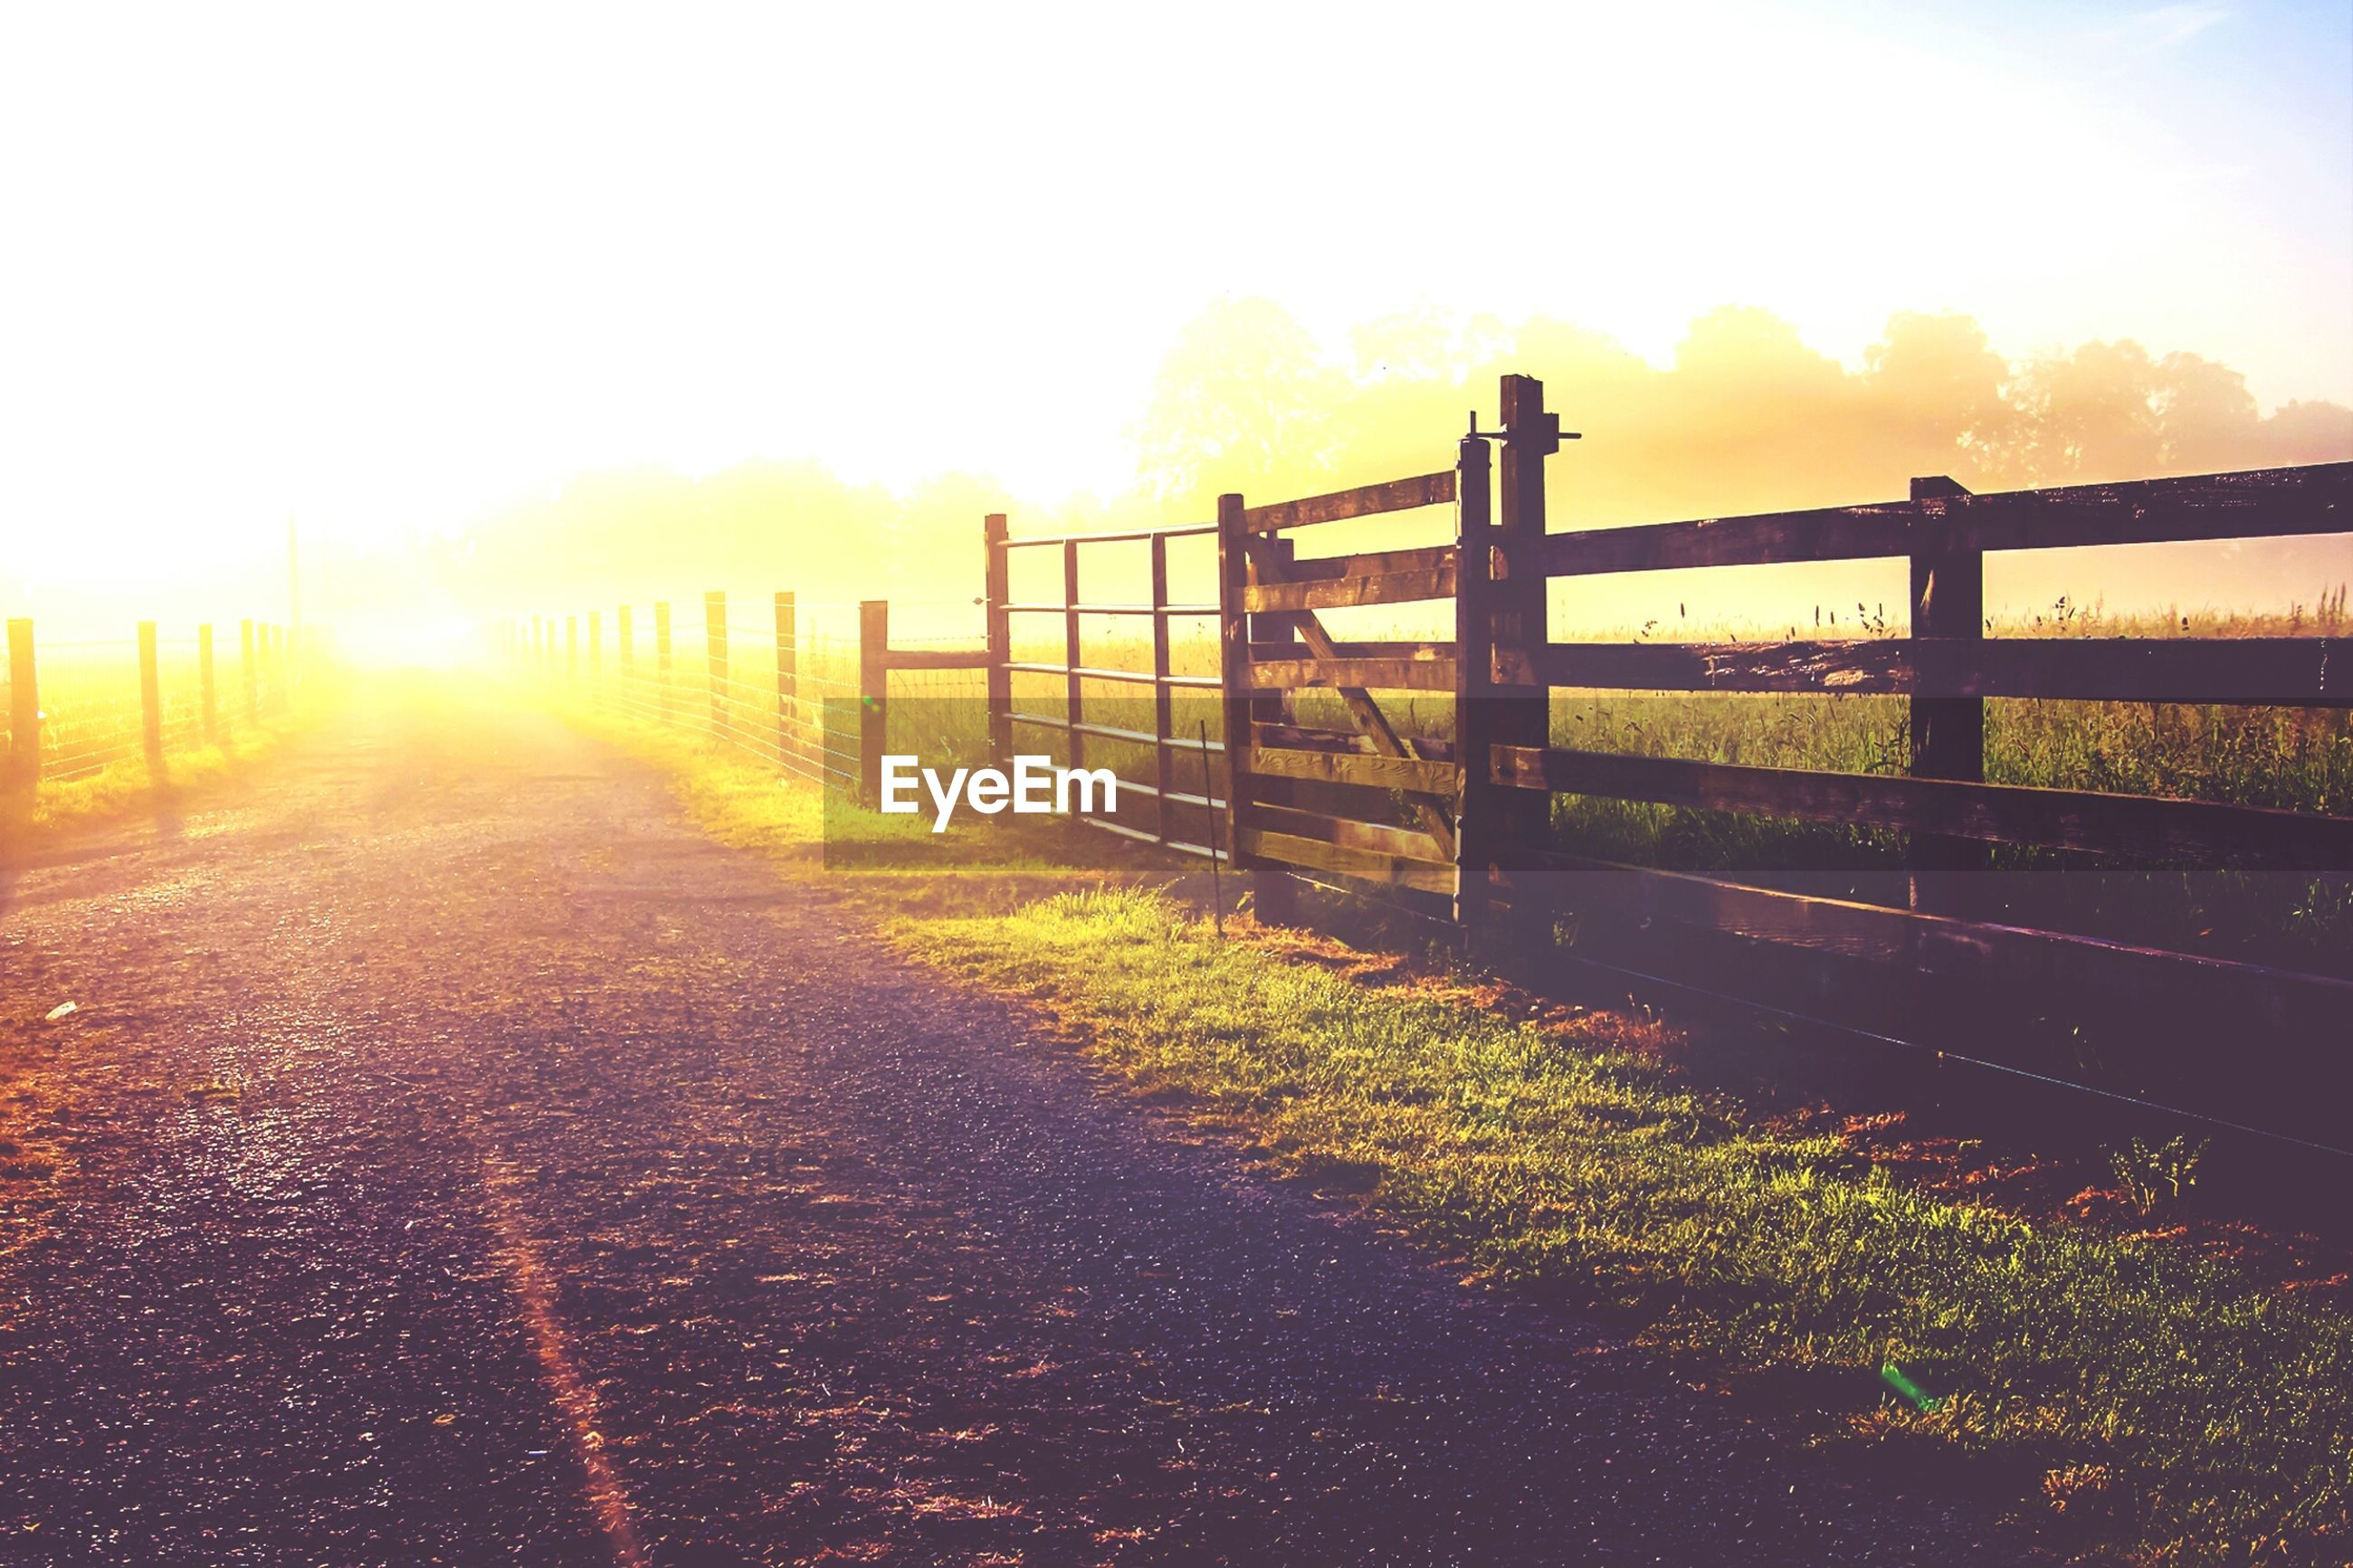 sunset, sun, sunlight, fence, sky, sunbeam, tranquil scene, tranquility, silhouette, nature, lens flare, scenics, railing, the way forward, field, landscape, beauty in nature, safety, protection